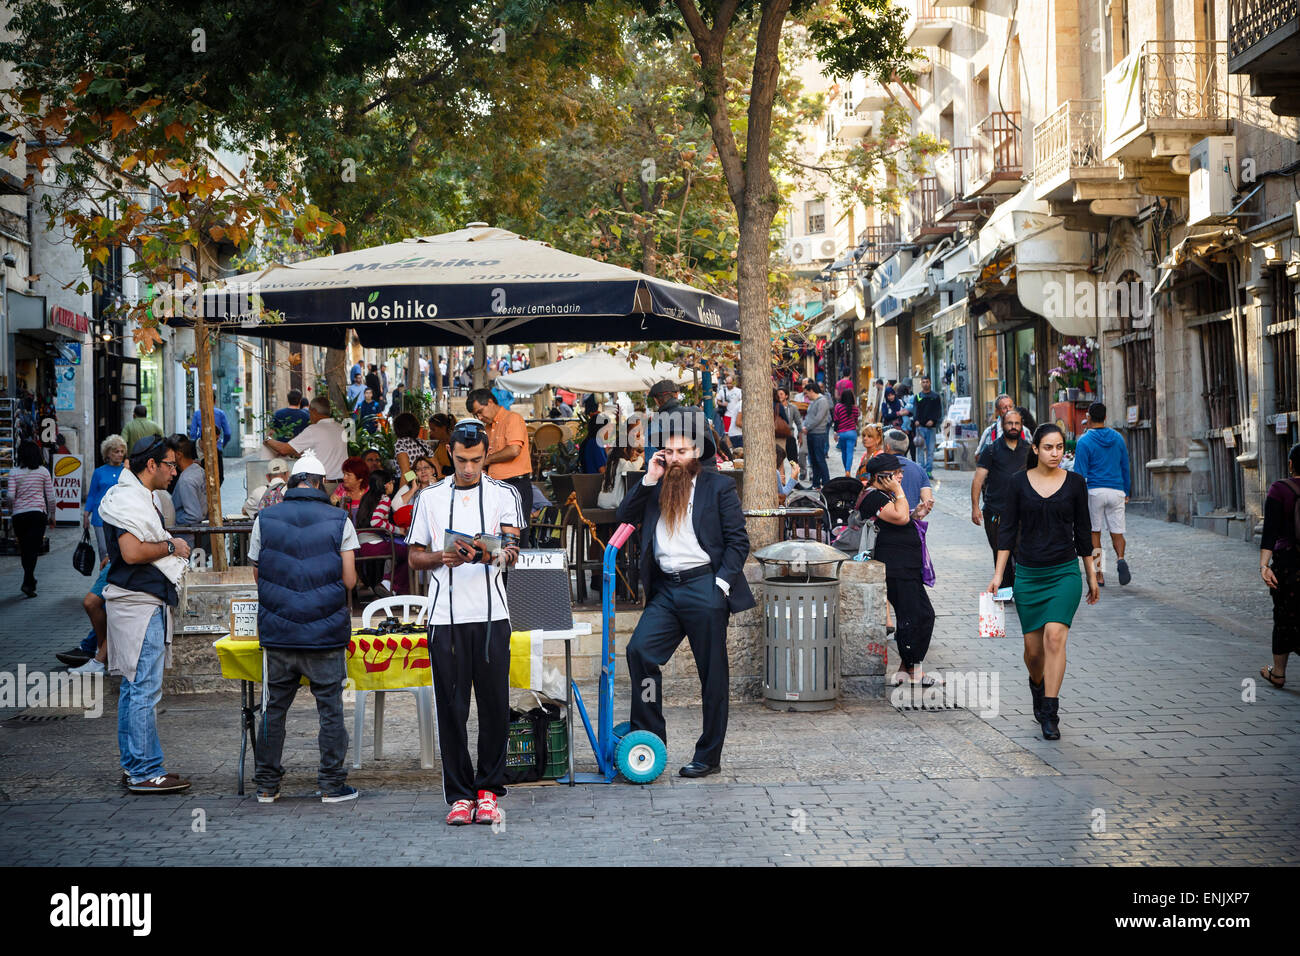 Ben Yehuda Jerusalem High Resolution Stock Photography And Images Alamy